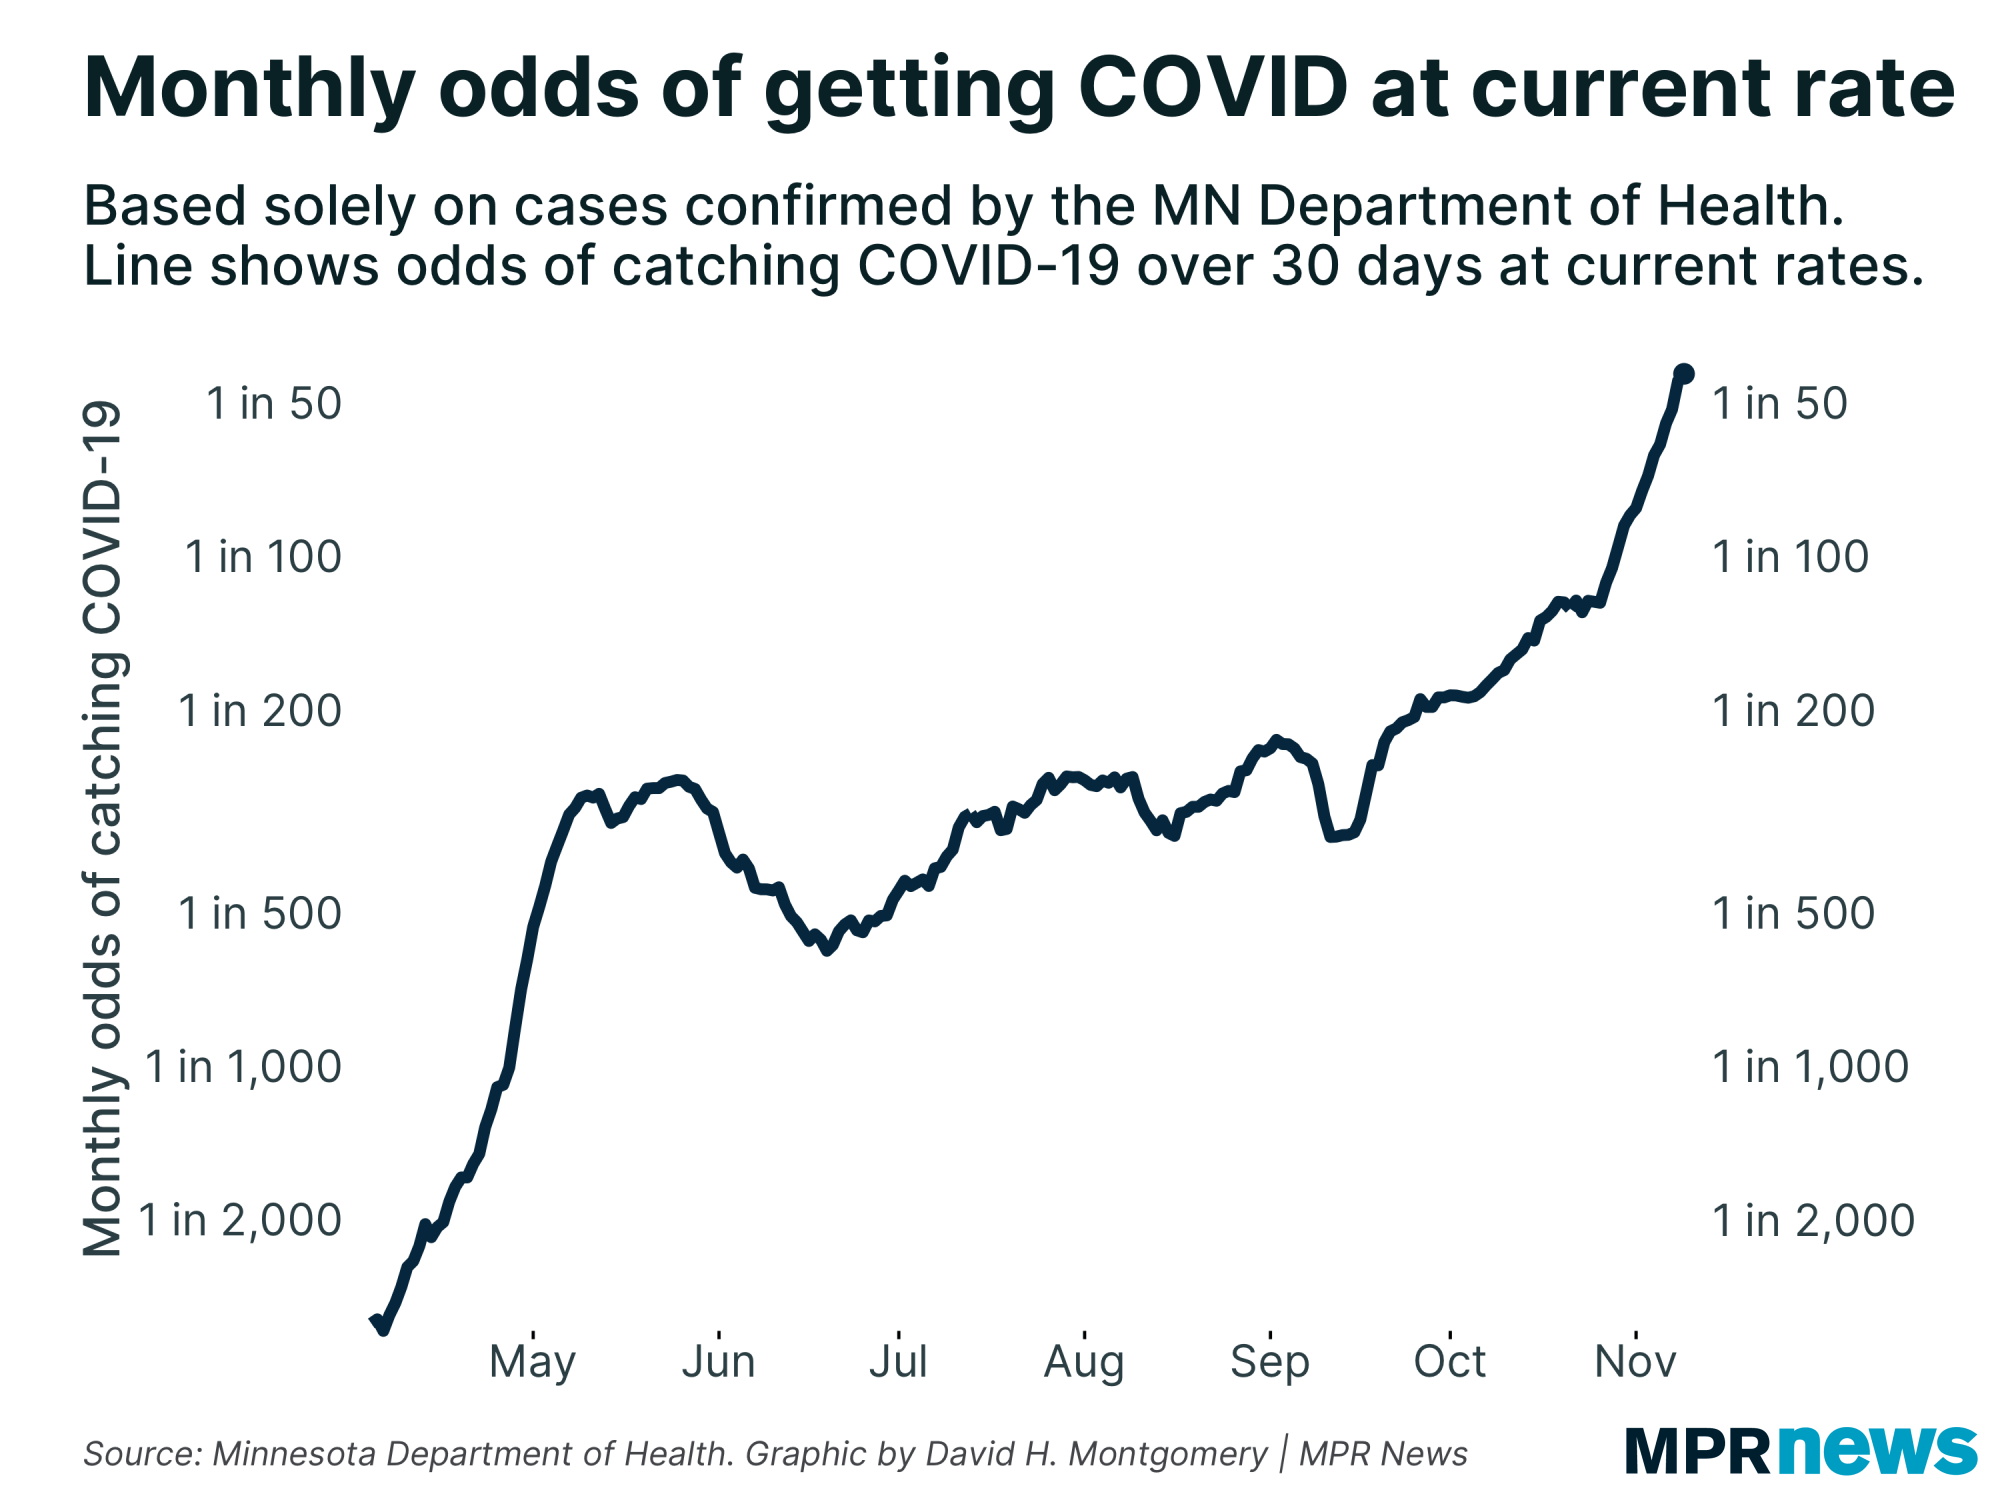 Monthly odds of getting COVID-19 at the current case rate in Minnesota